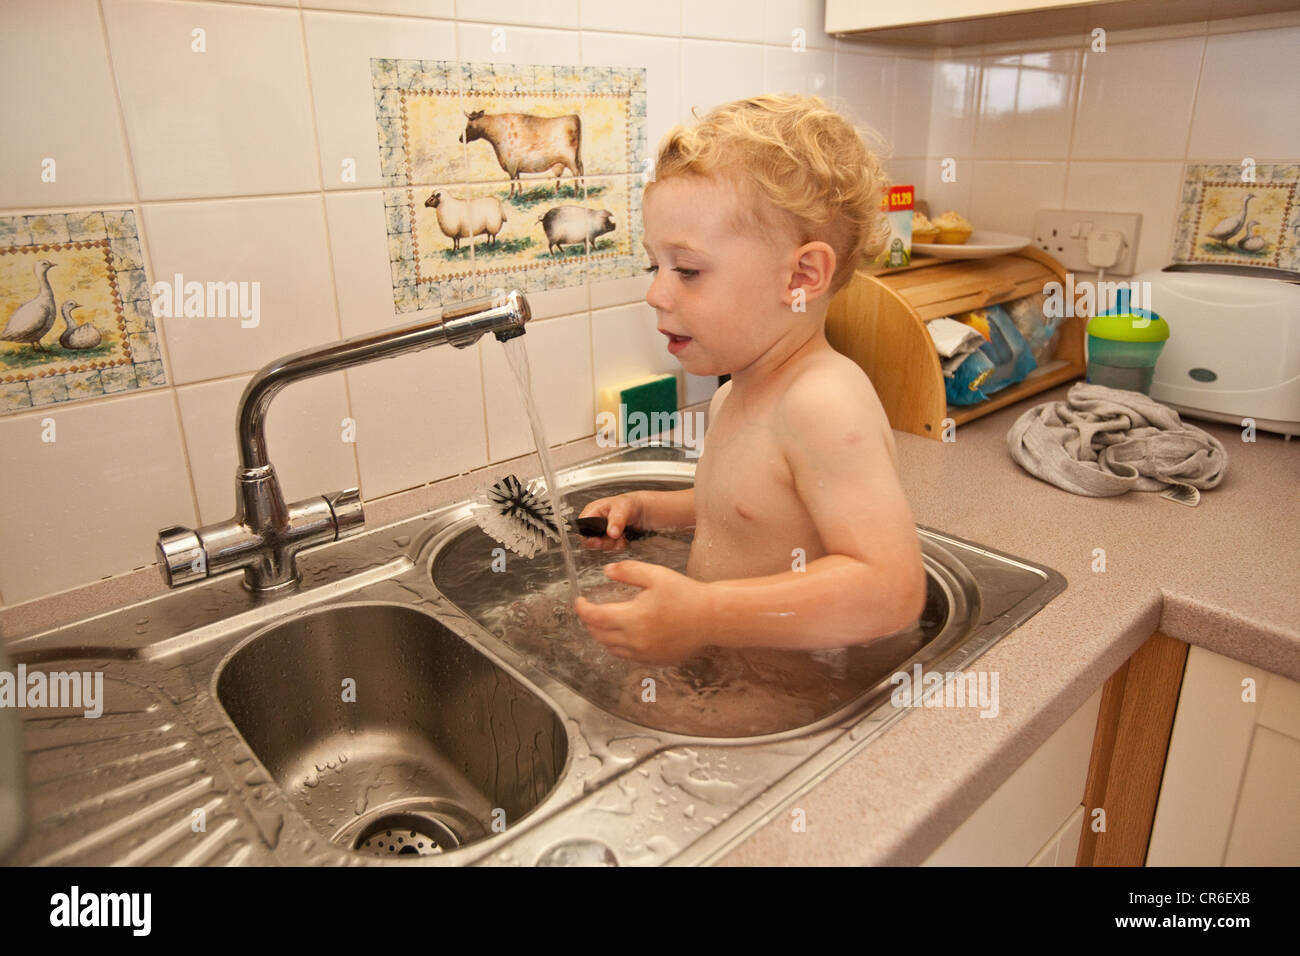 Two Year Old Baby Boy Having A Bath In A Kitchen Sink